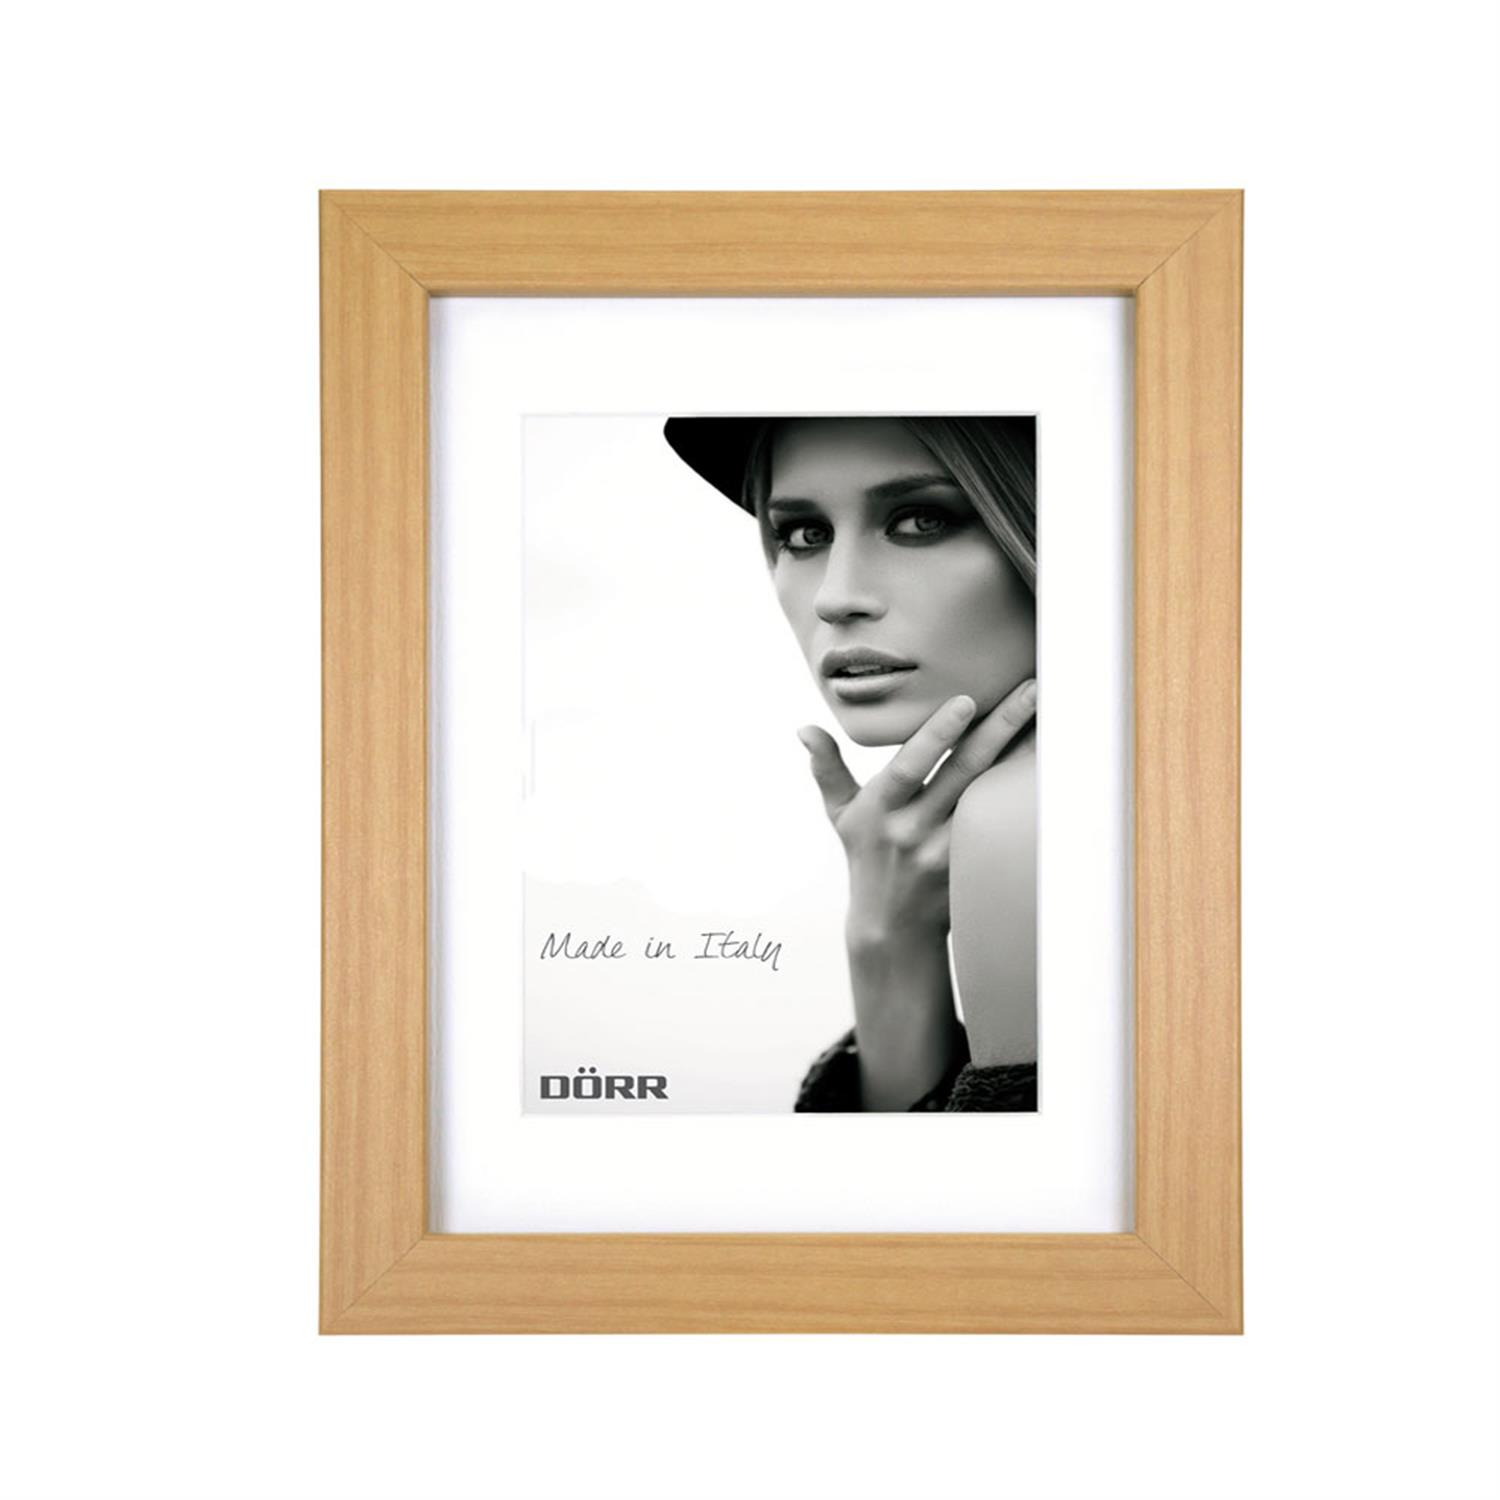 Dorr Bloc Natural 12x8 inches Wood Photo Frame with an 8x6 inch inser